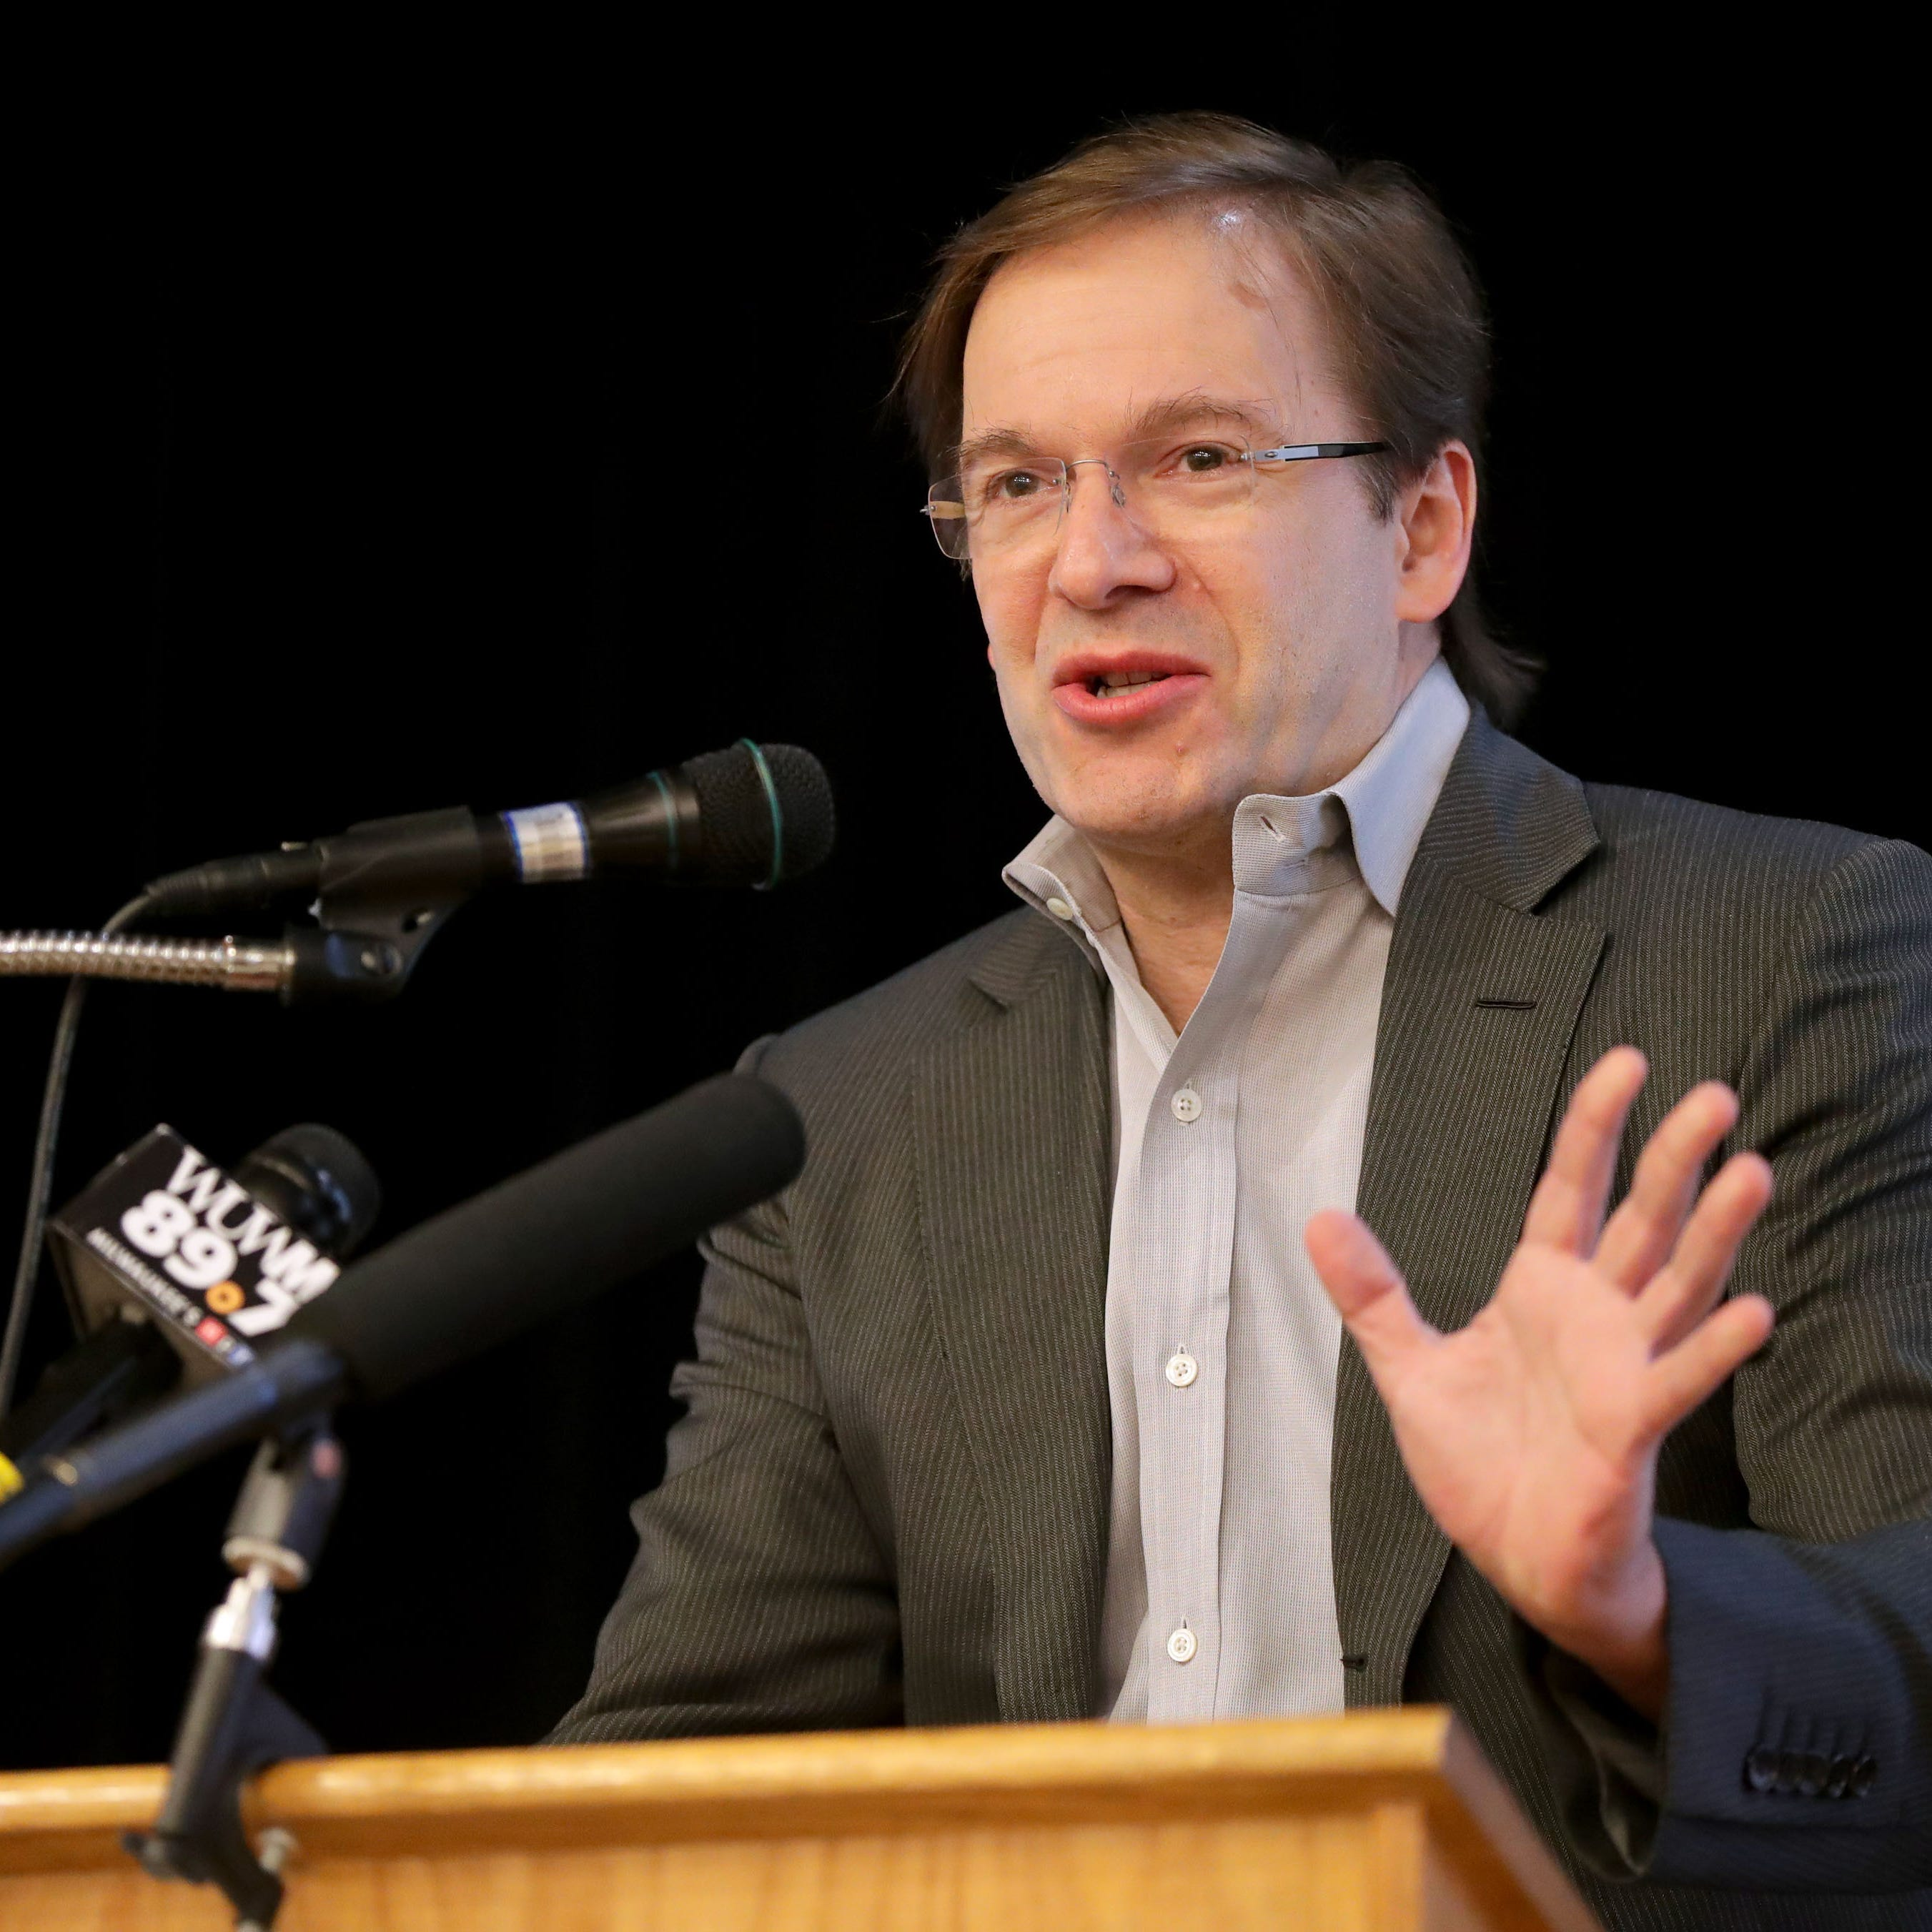 Chris Abele is running for re-election as Milwaukee County exec. Will he face a challenger?